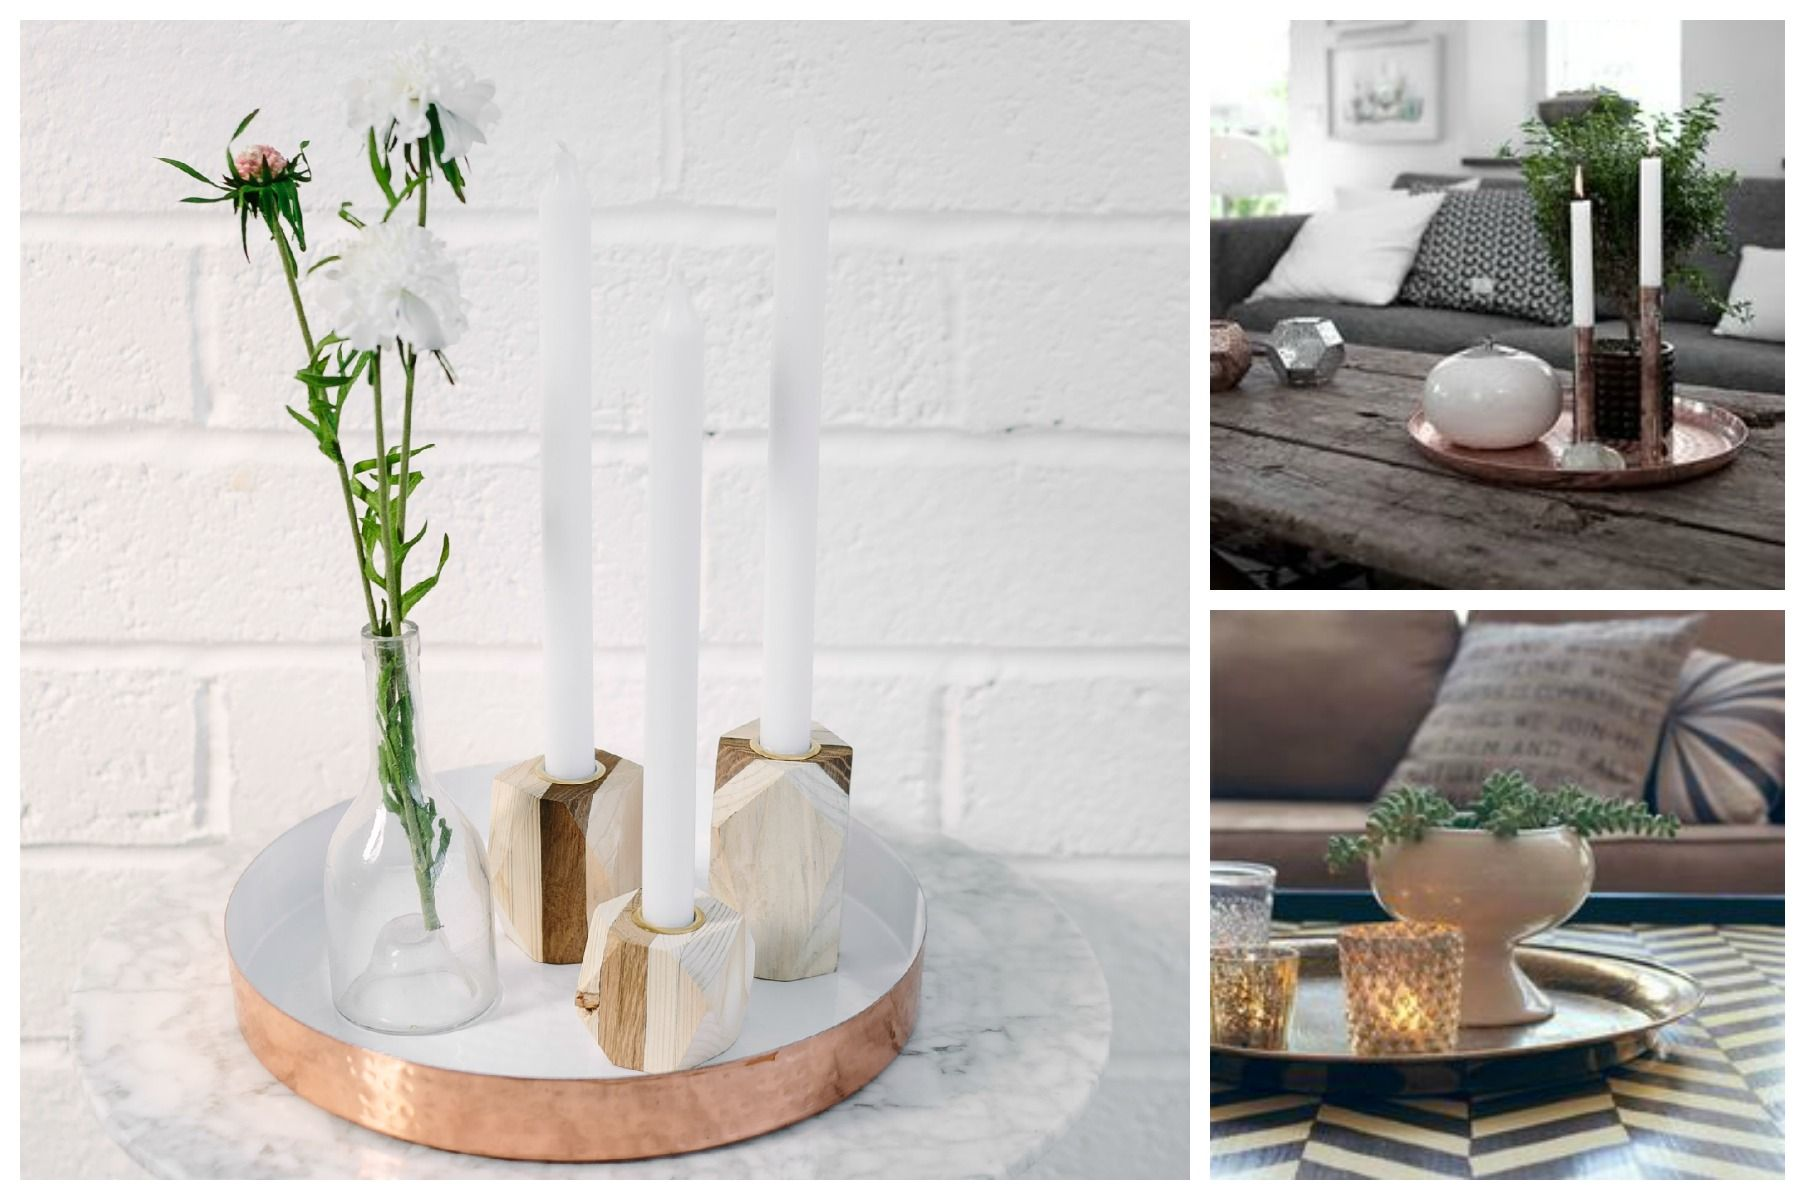 #interior #styling #tips  Use a decorative tray to collate a small group of candles, a vase with flowers or small pot with a succulent plant and an interesting ornament or shell. SHOP the main image with copper tray here: http://collectie.co.uk/collections/featured/products/natural-retreat #interiors #tray